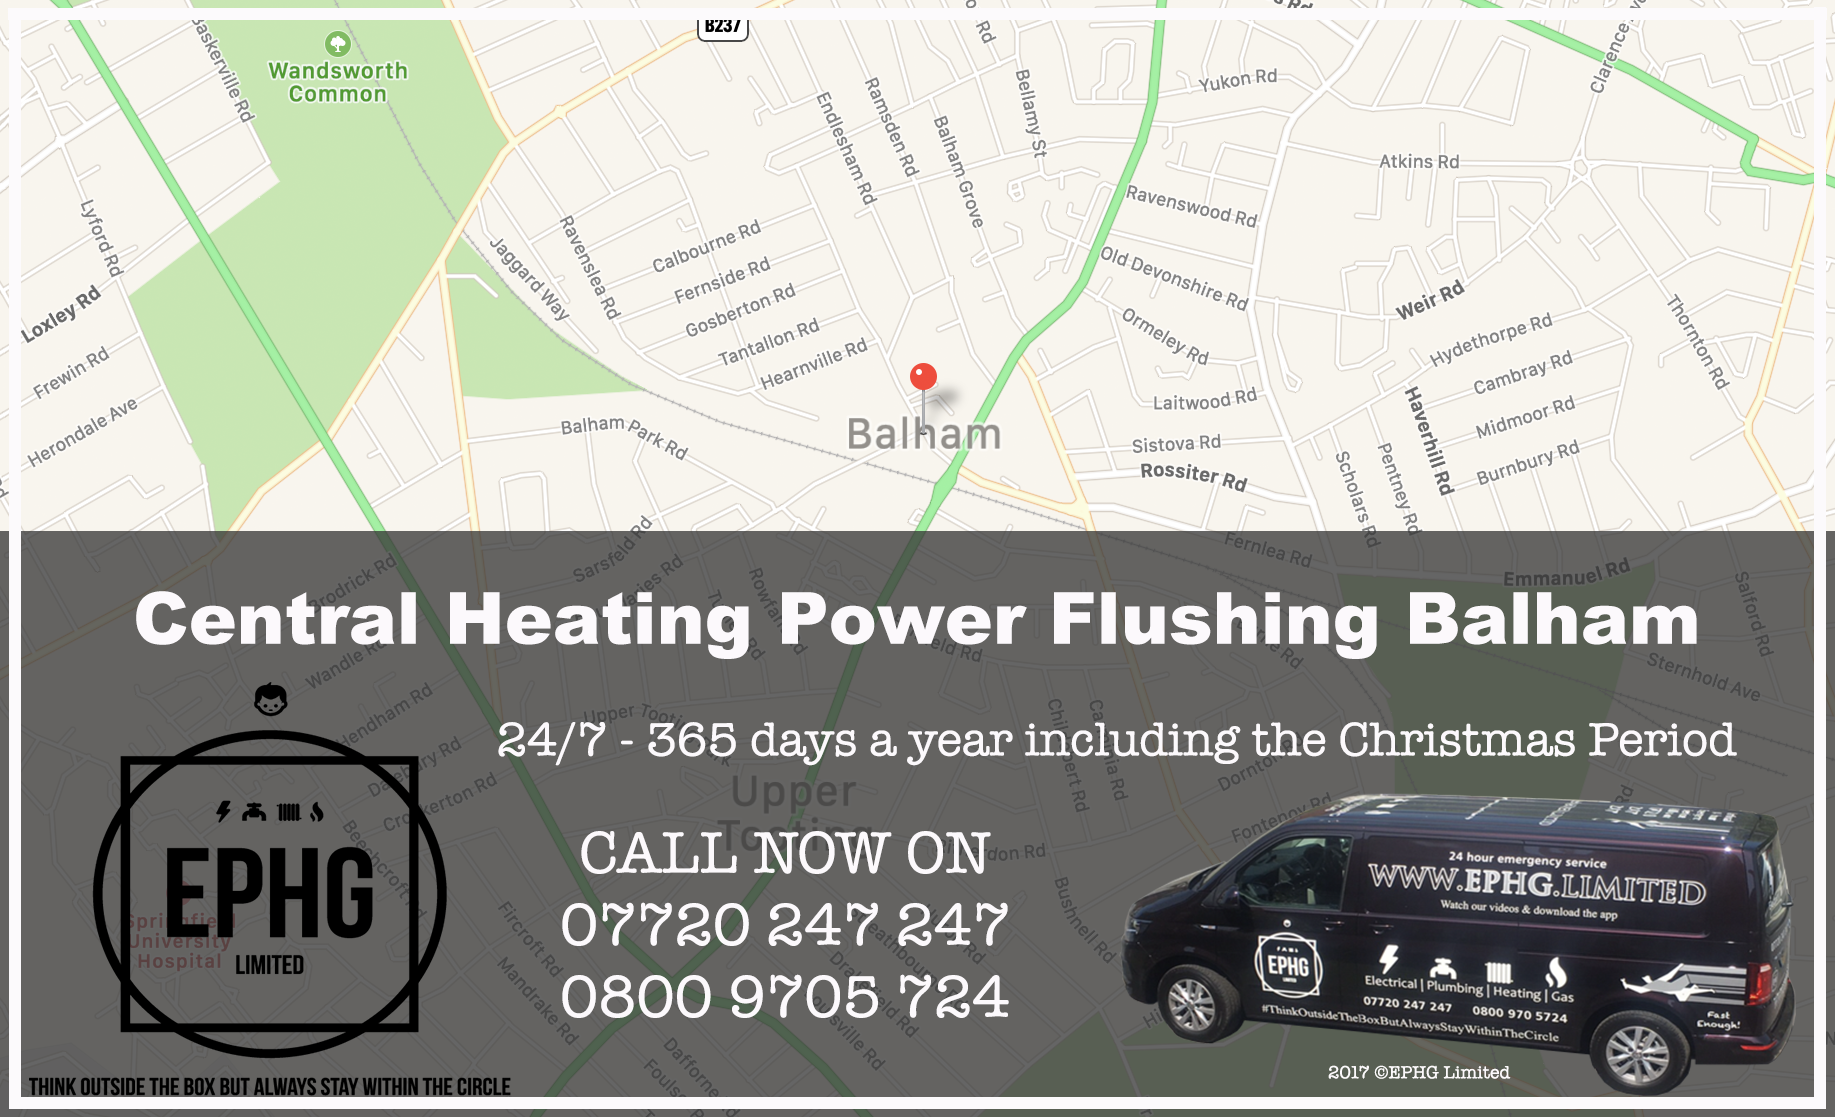 Central Heating Power Flush Balham